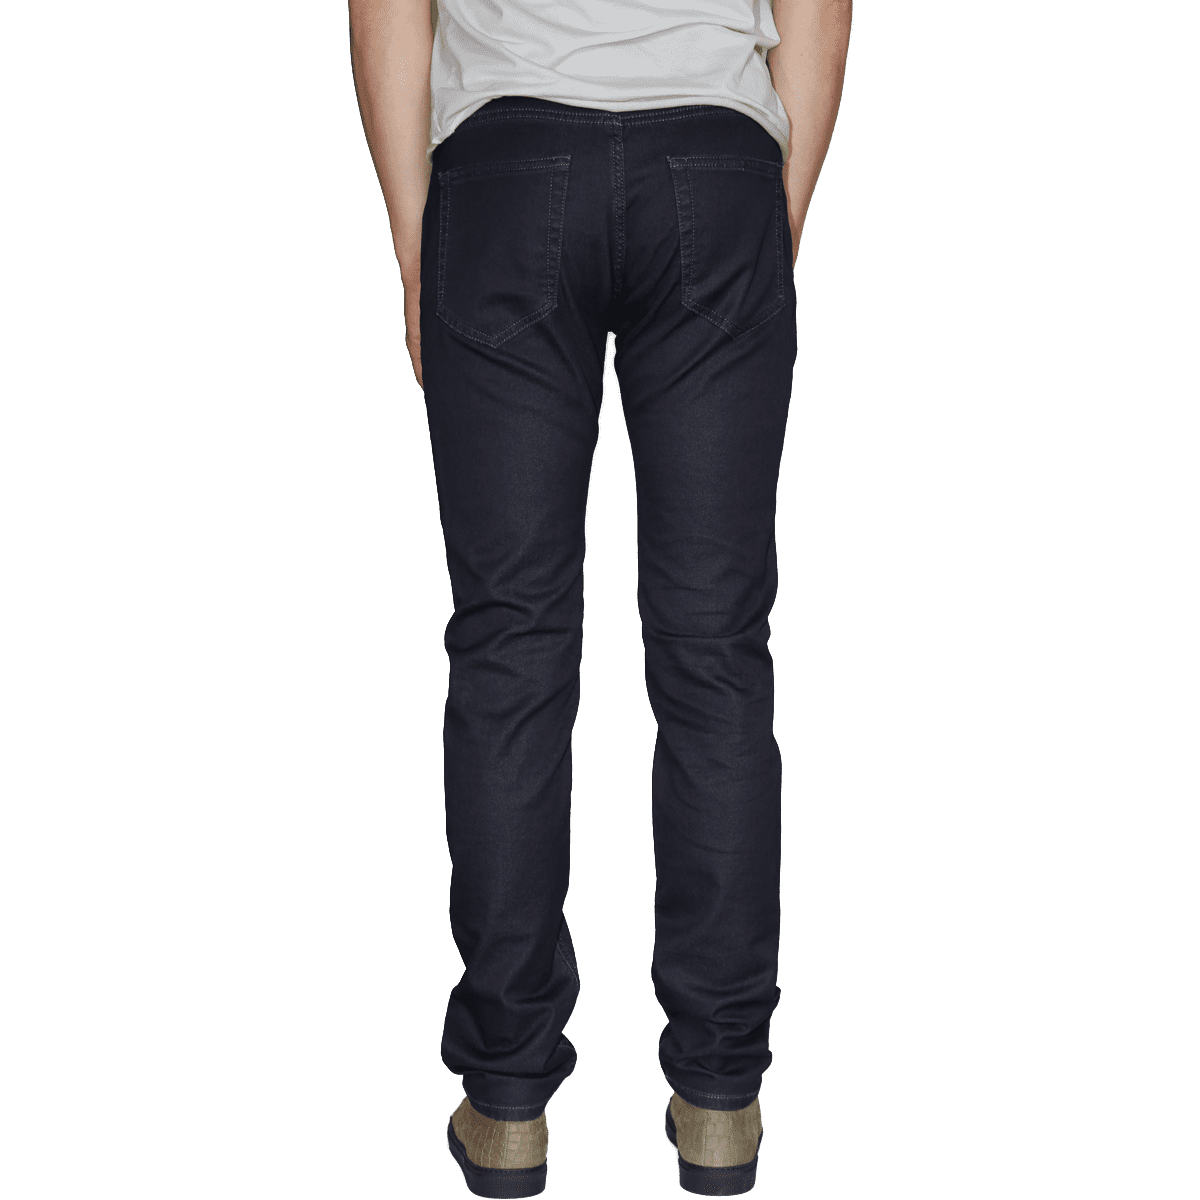 Cabinero Stiles Berlin PG Enjoy Jeans, Herrenhosen, made in Italy AW17-18 denim Blue-Green 3